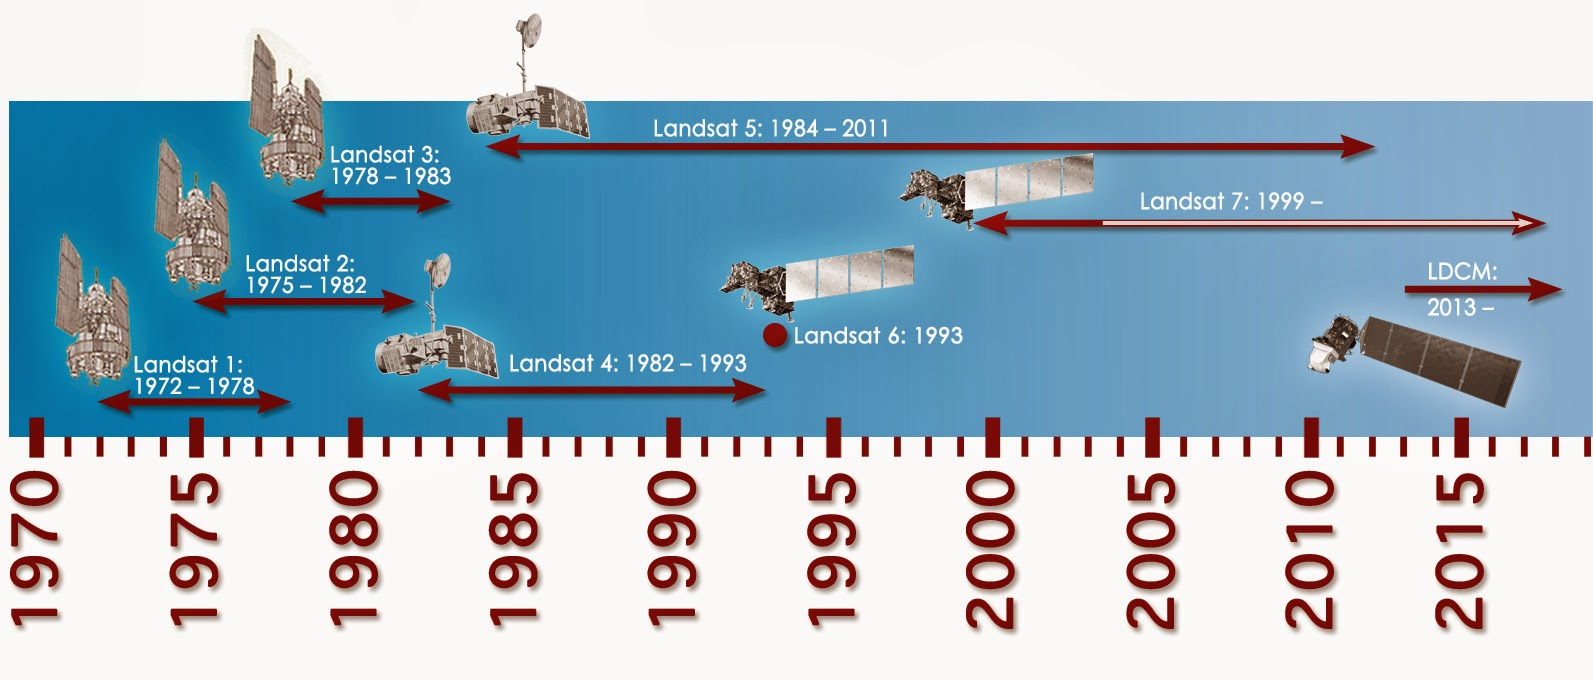 The Landsat program